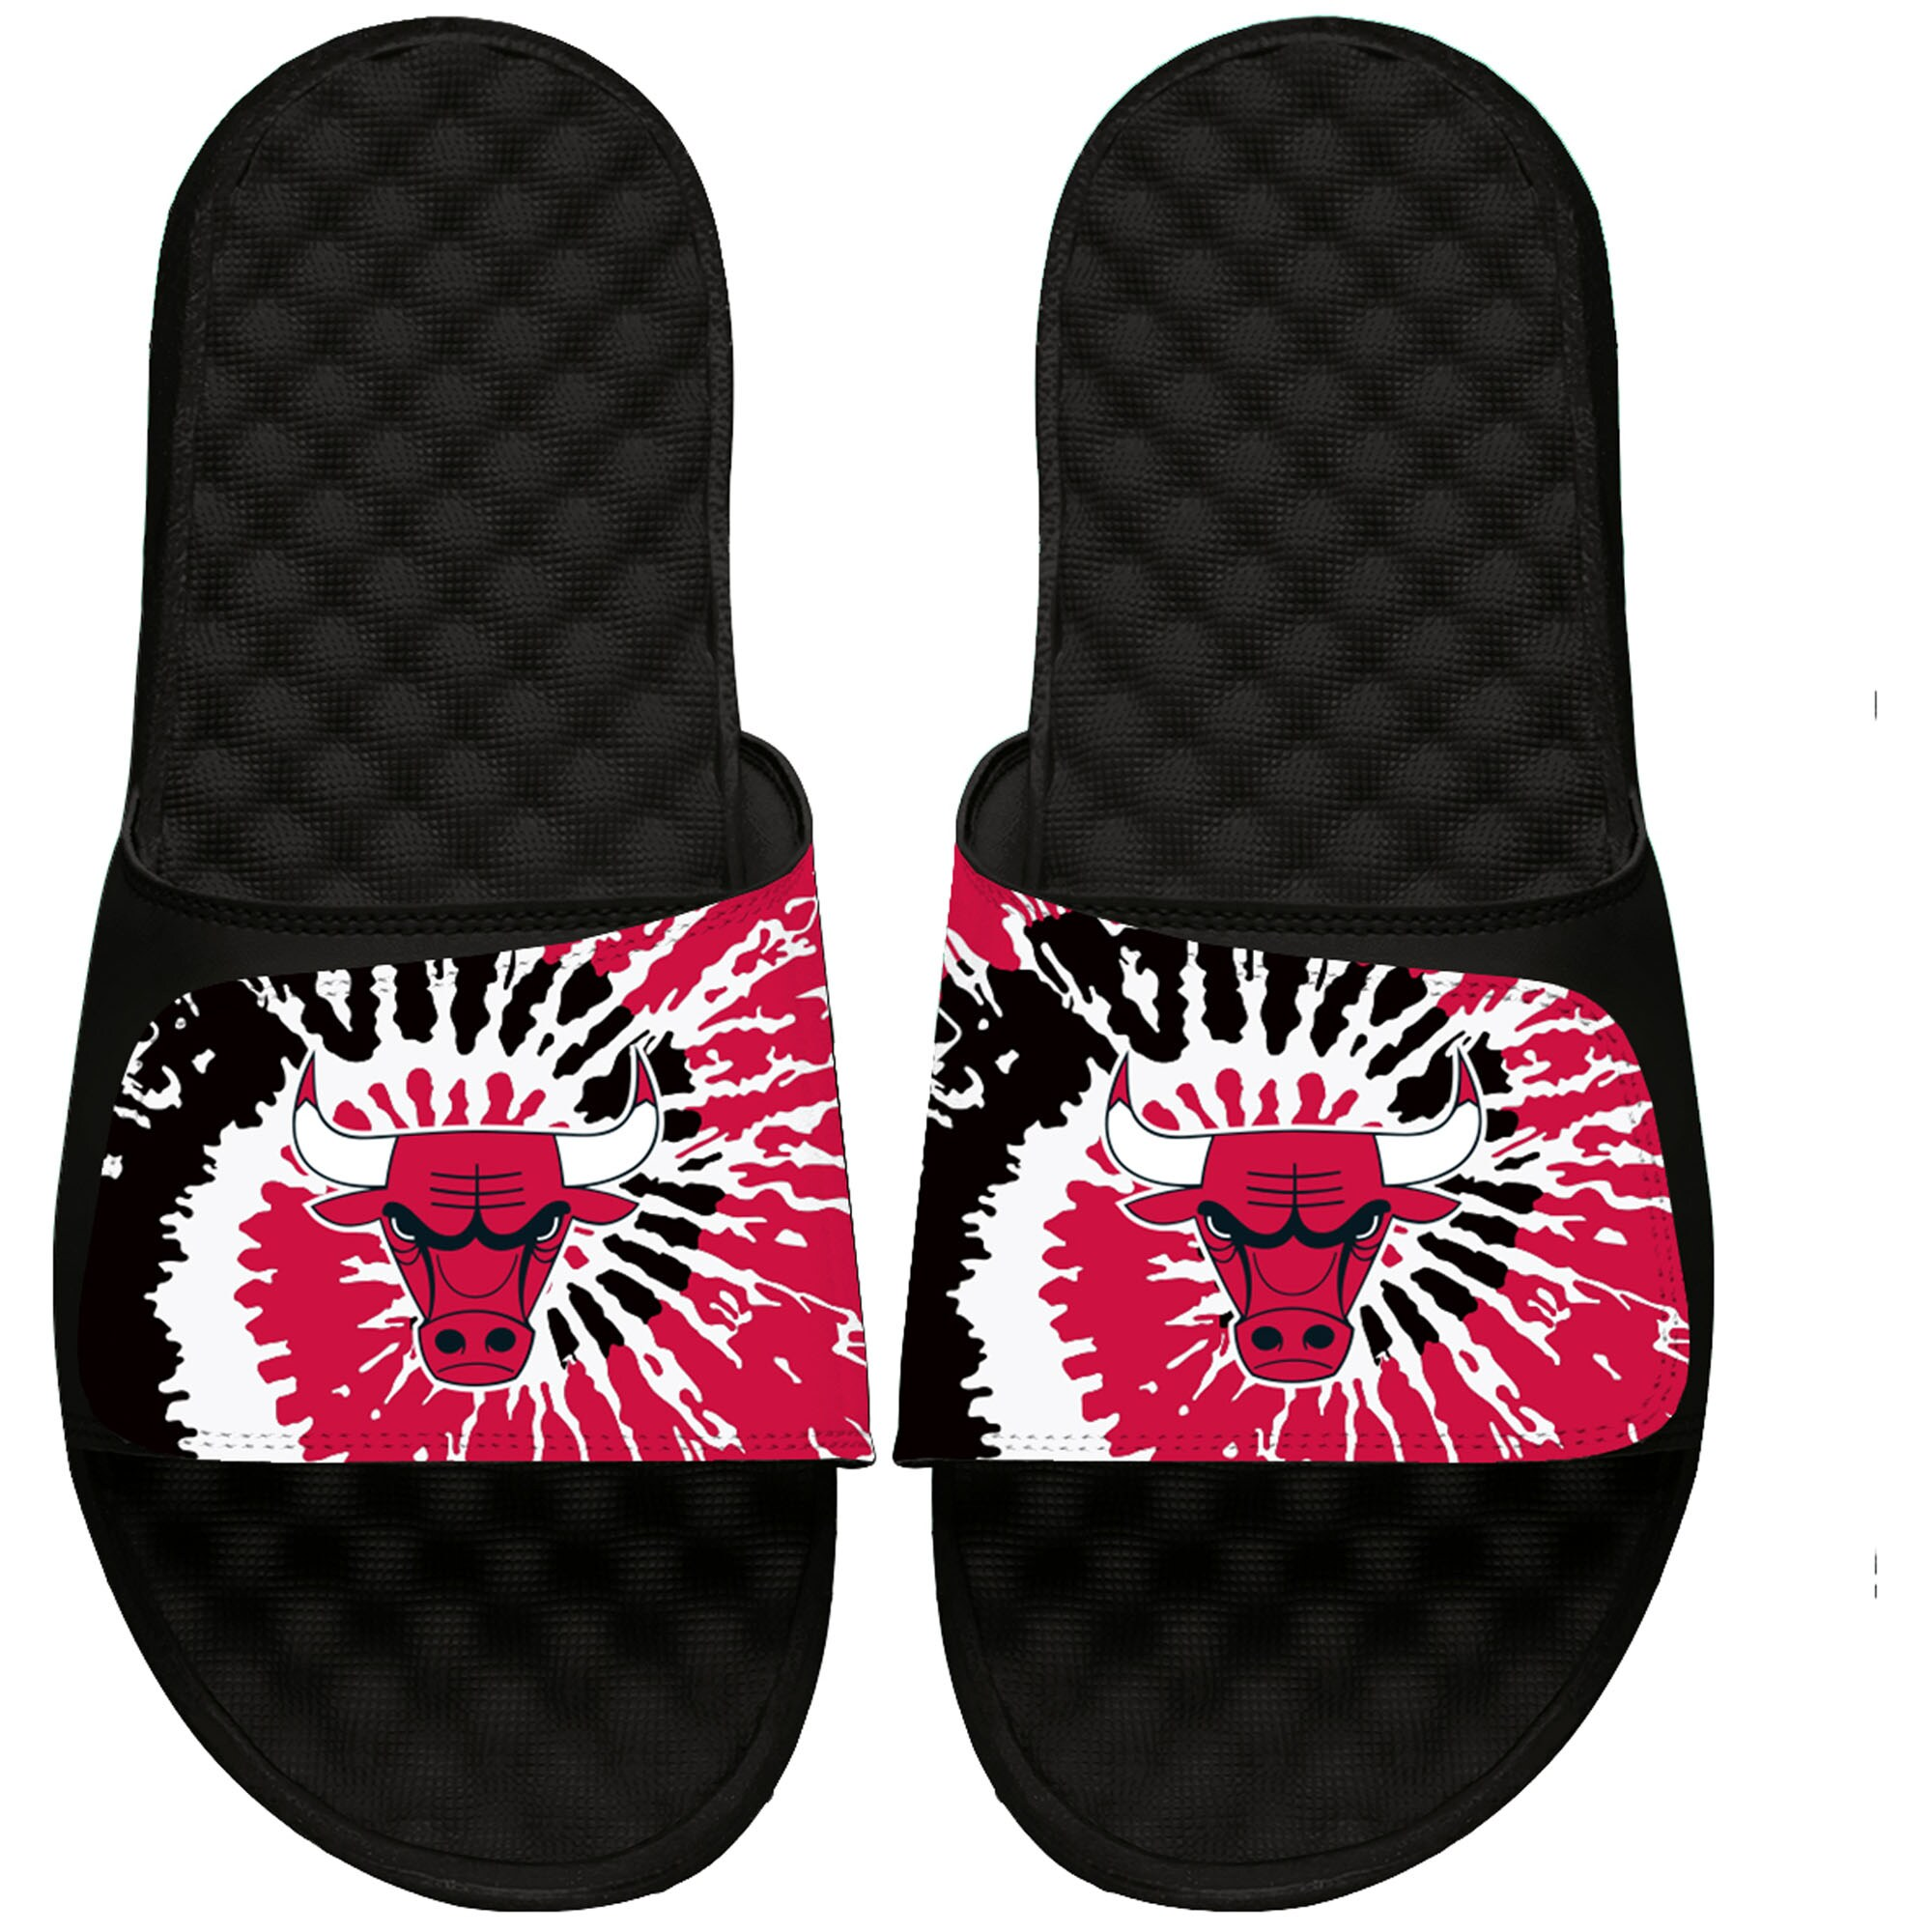 Chicago Bulls ISlide Tie Dye Slide Sandals - Black